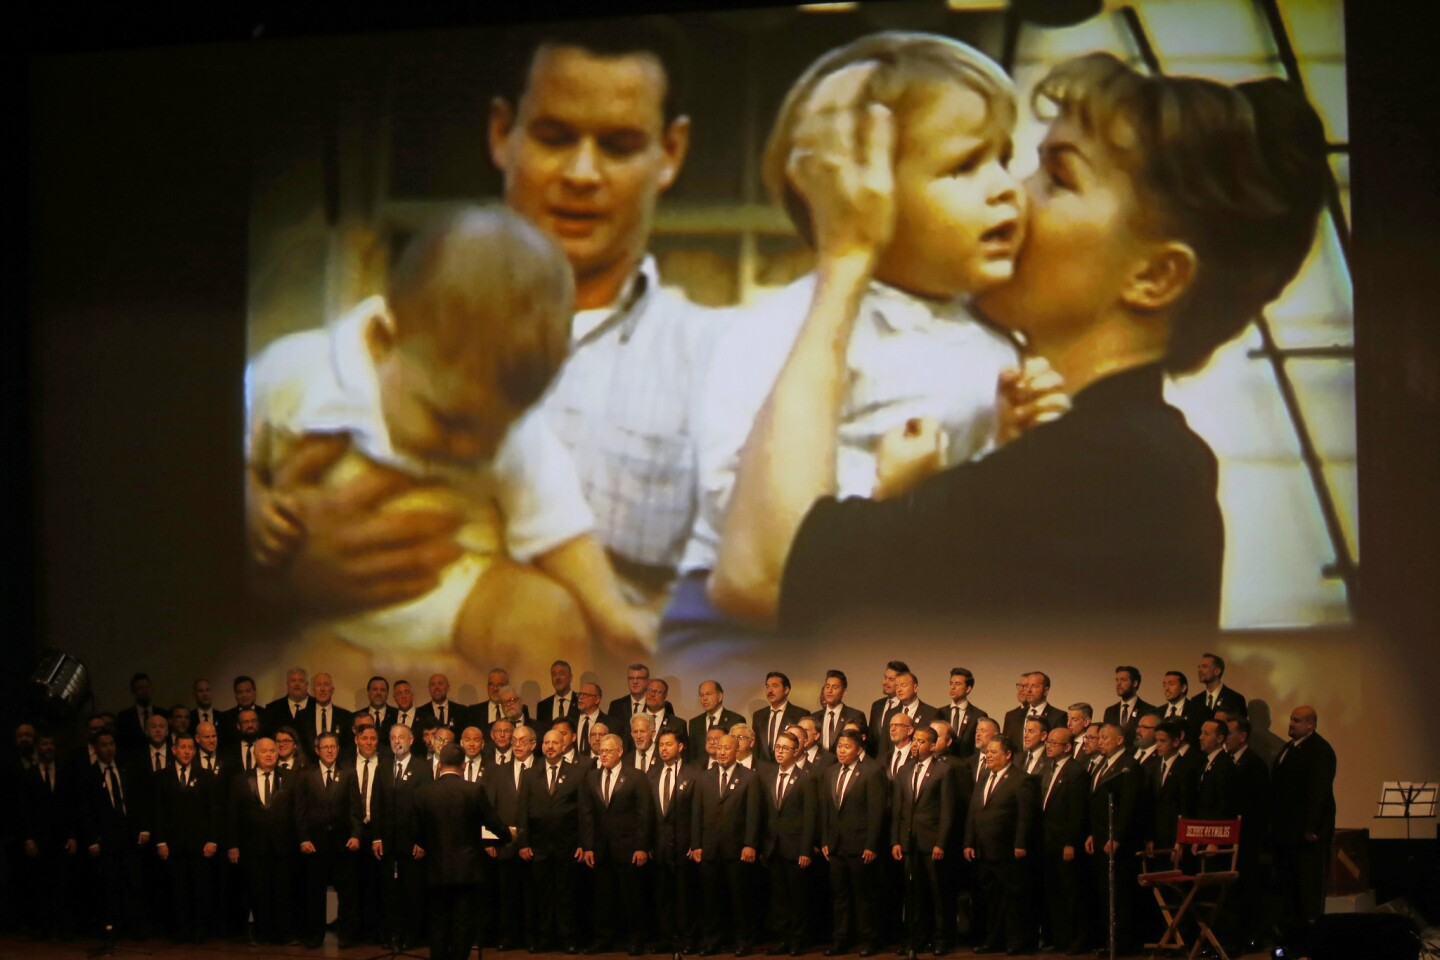 The Gay Men's Chorus of Los Angeles sings during the memorial for Debbie Reynolds and Carrie Fisher near their grave at Forest Lawn Memorial Park-Hollywood Hills.